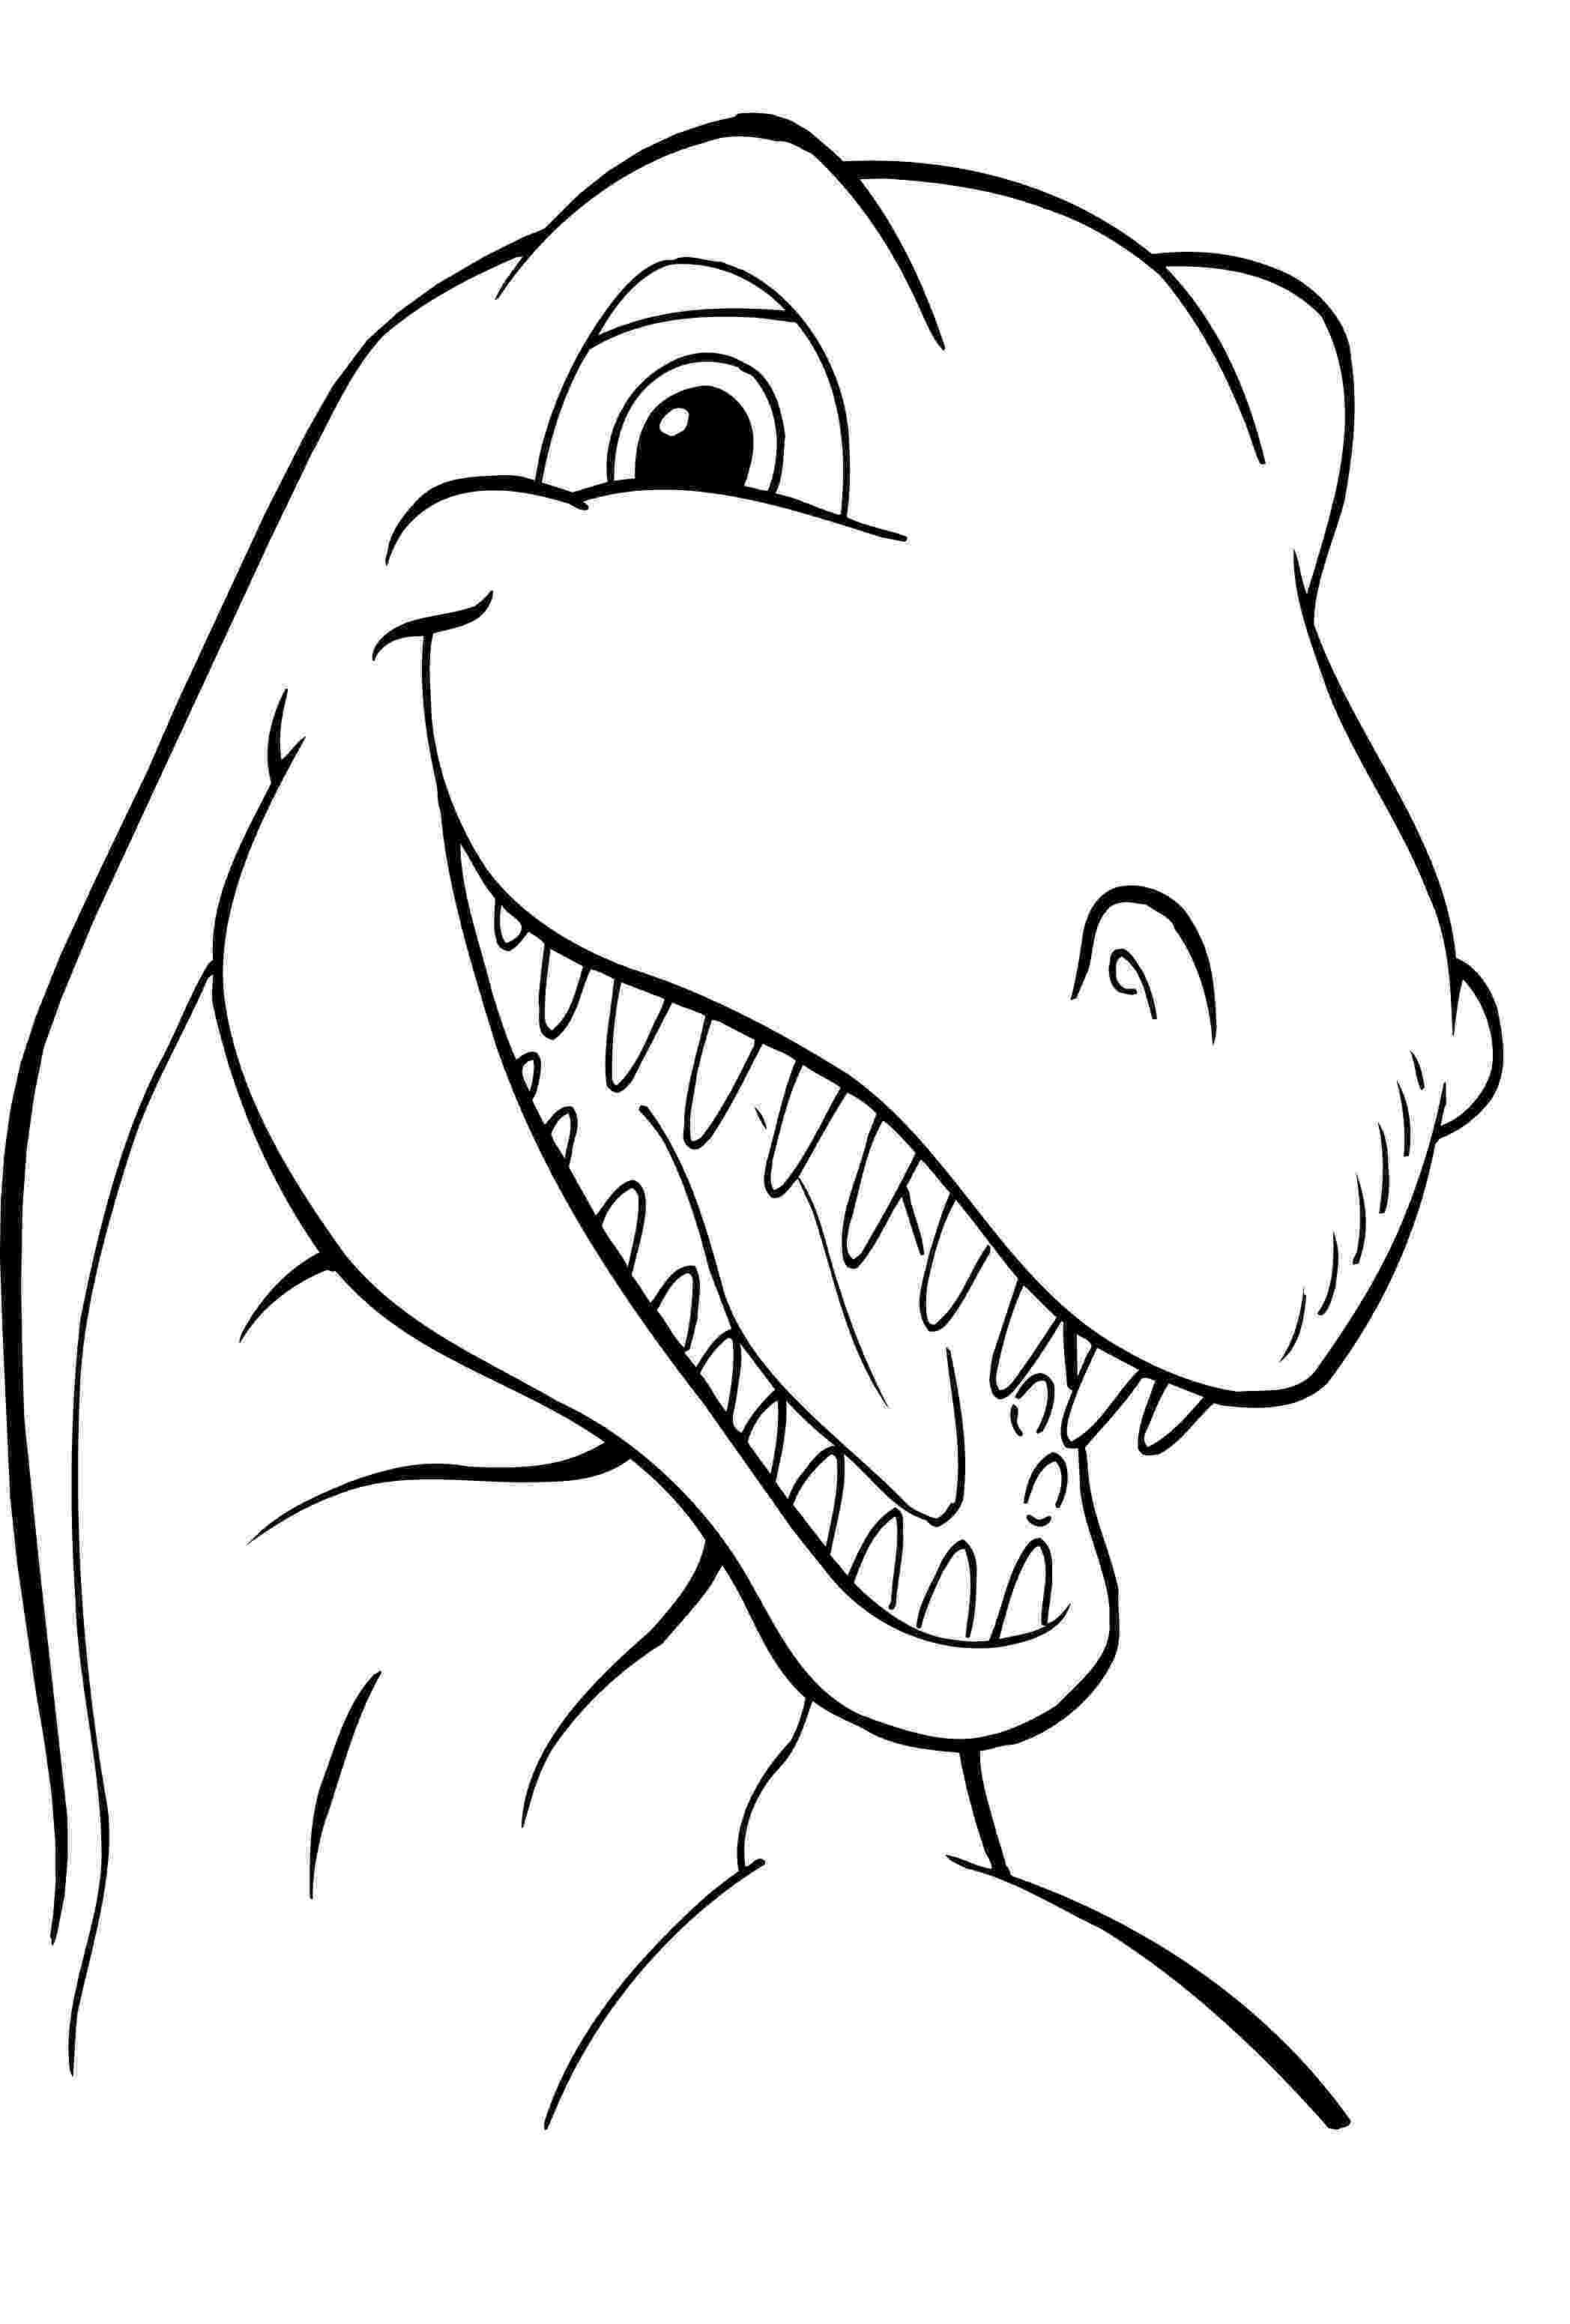 free printable dinosaur coloring pages dinosaur free printable coloring pages printable free dinosaur